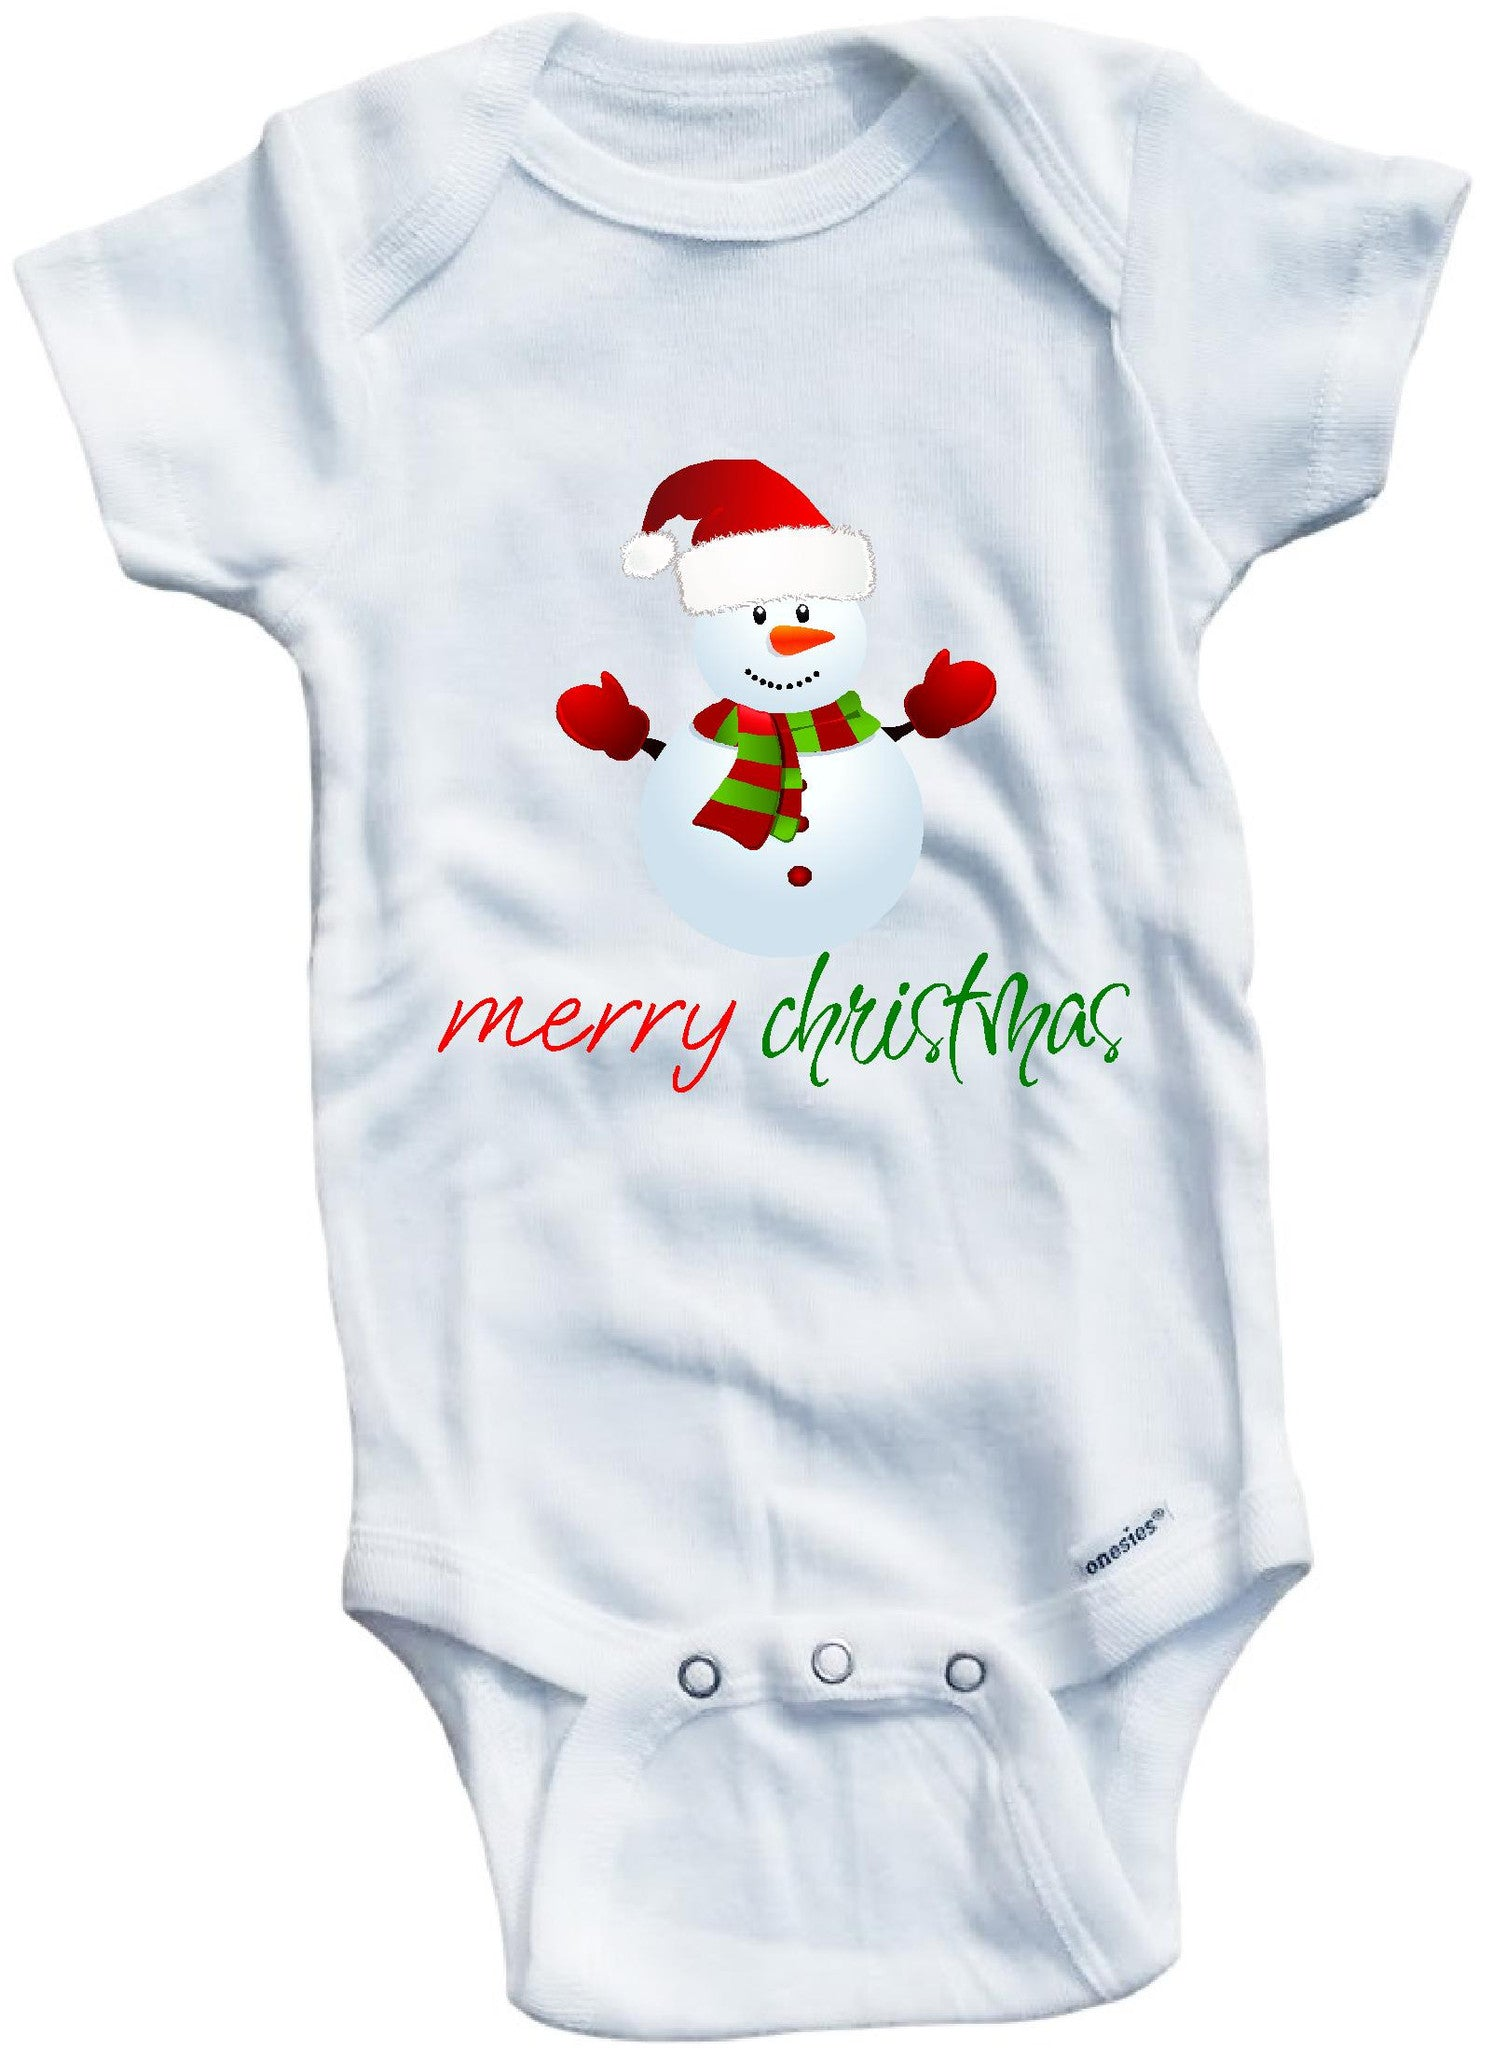 Merry Christmas cute infant clothing funny baby clothes bodysuit one